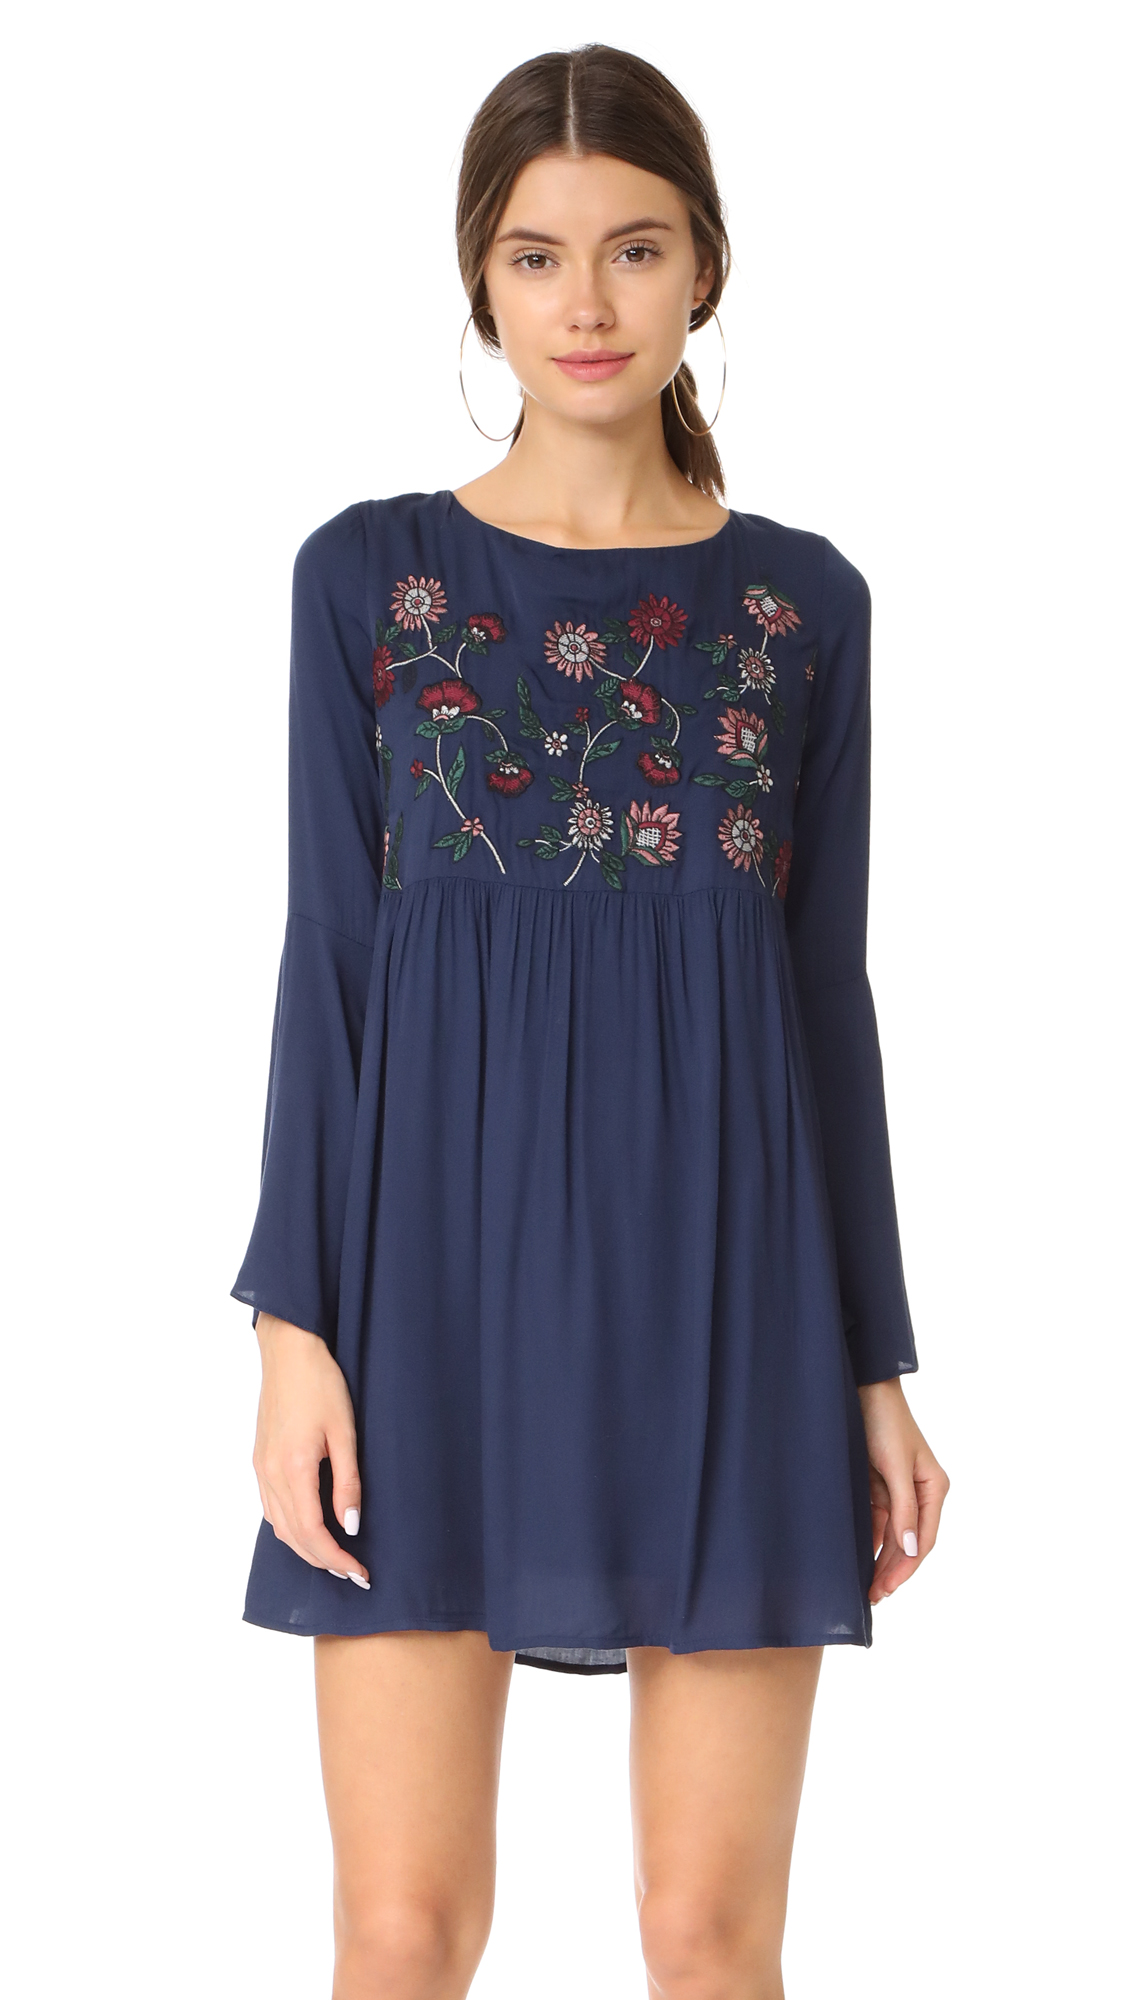 BB Dakota Bria Embroidered Tie Back Dress - Imperial Blue